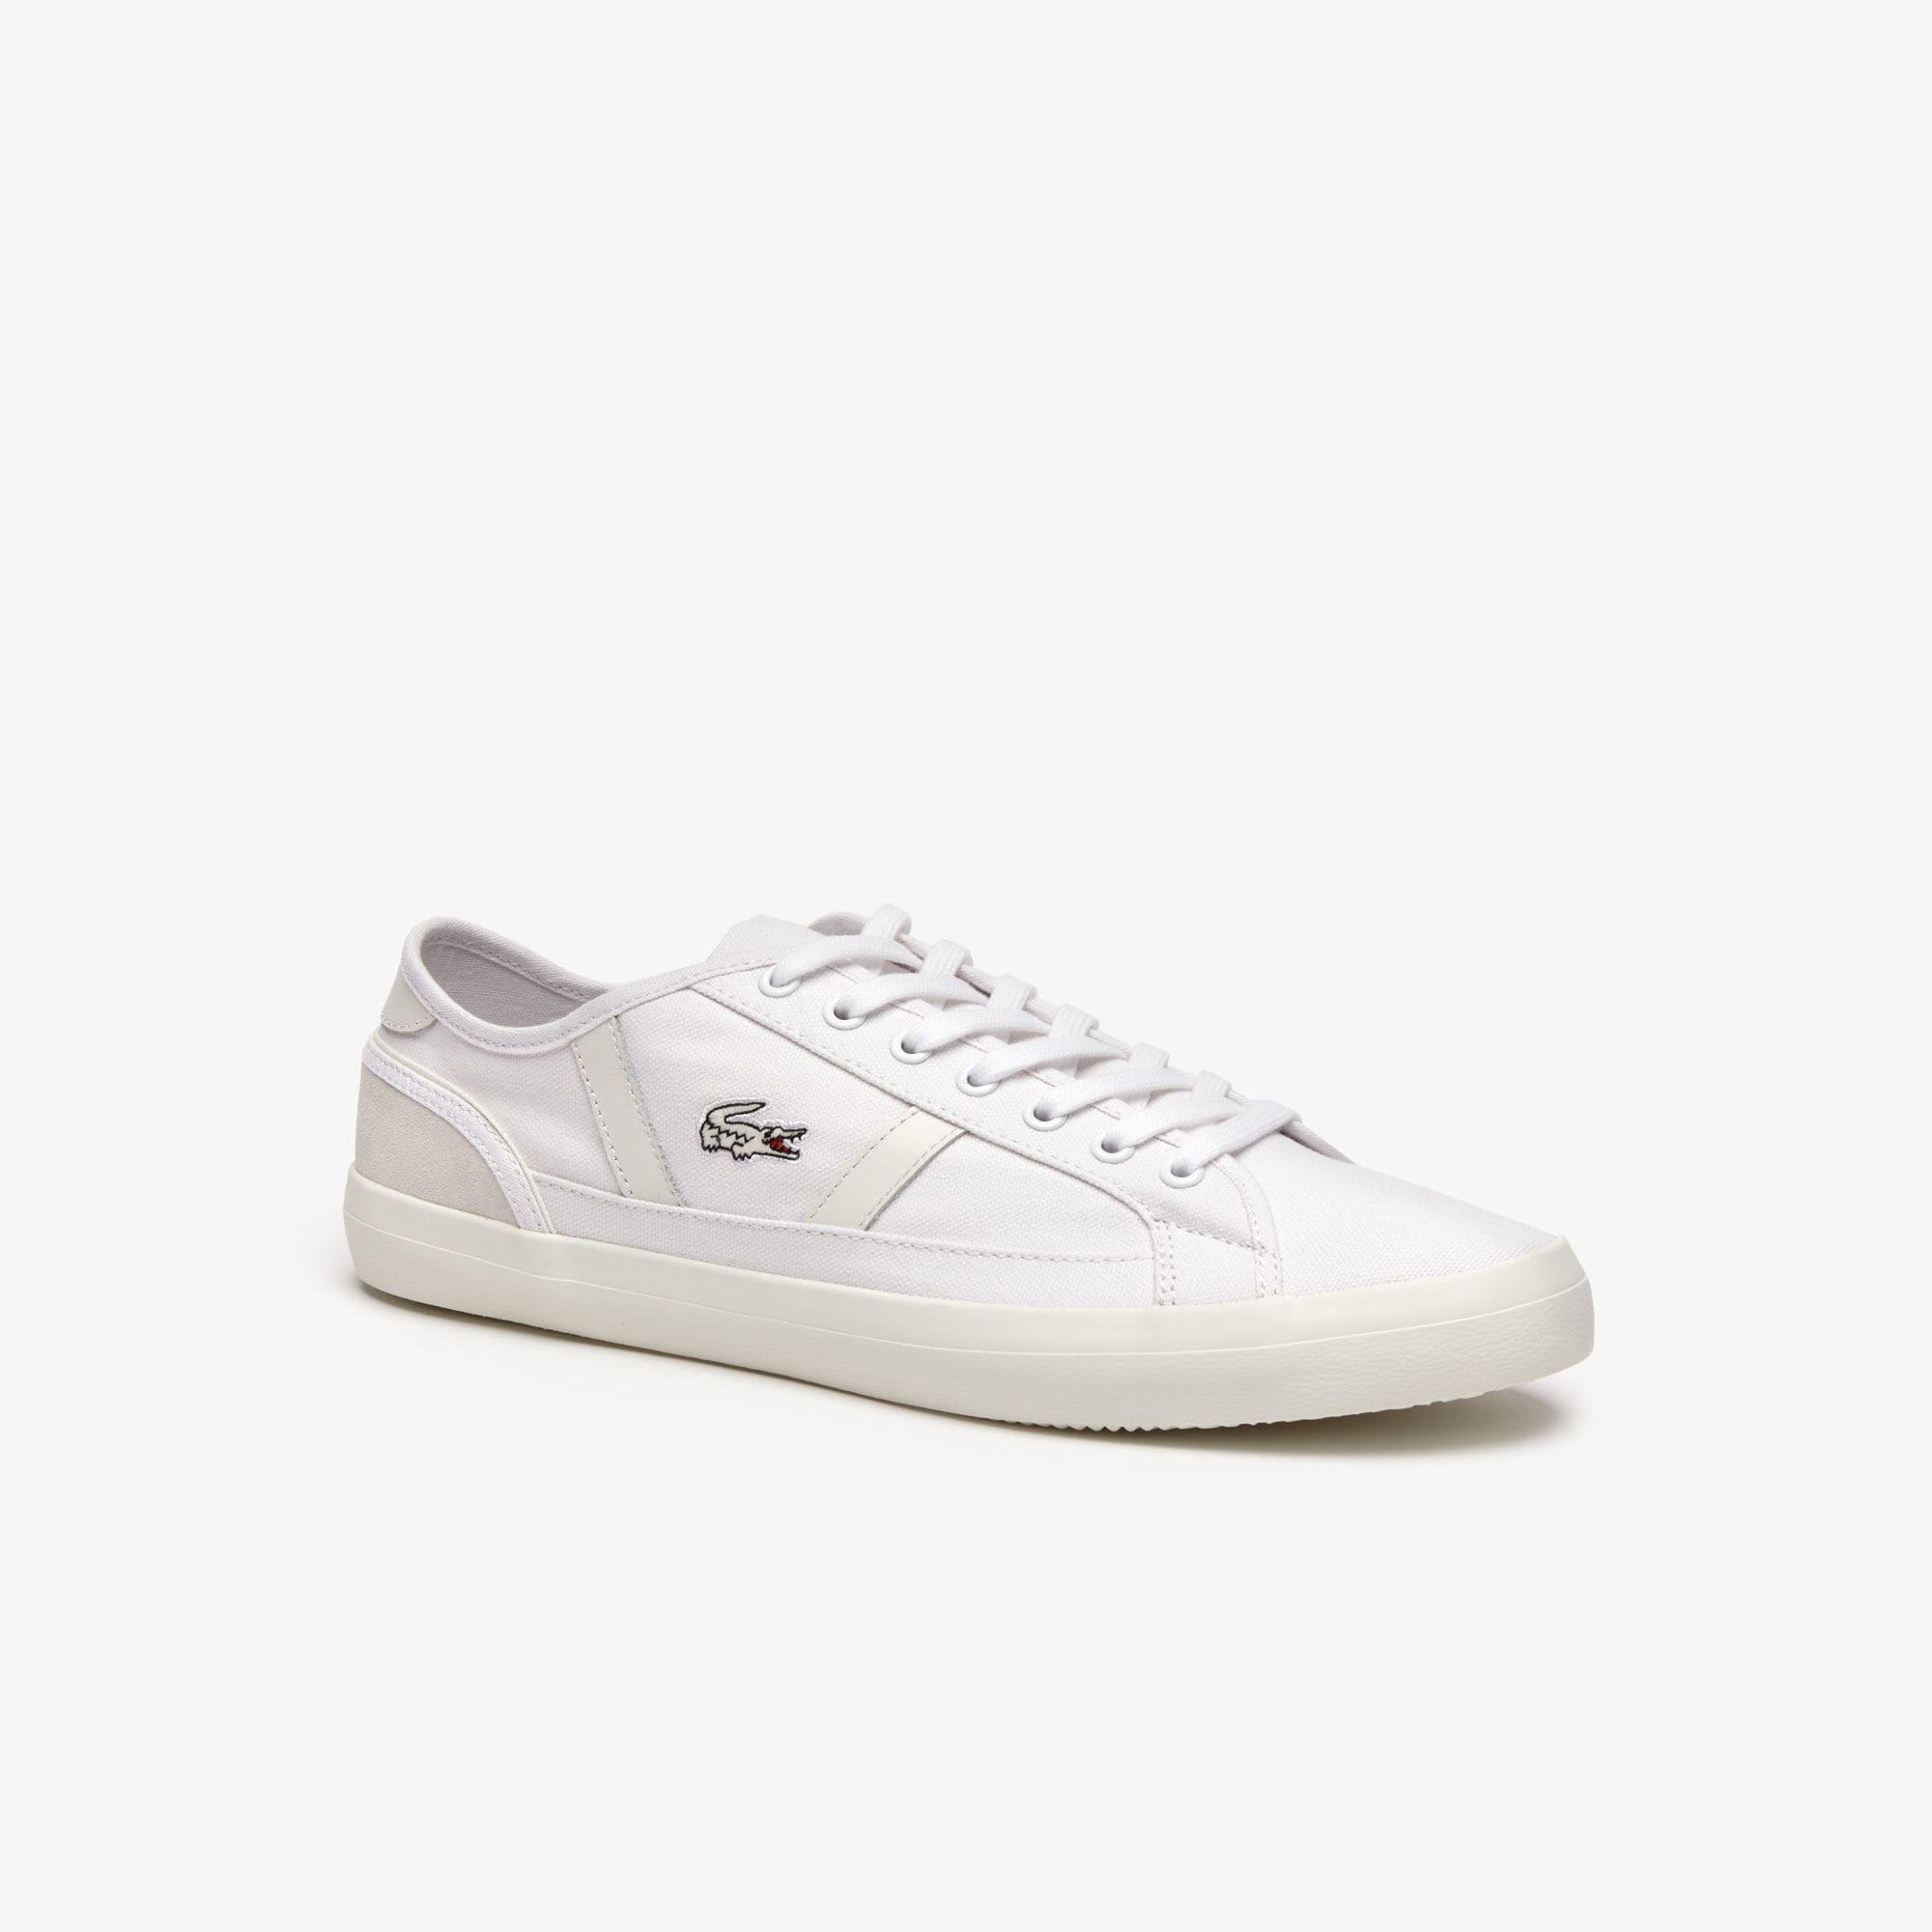 96a4286ae Lyst - Lacoste Sideline Canvas And Leather Sneakers in White for Men